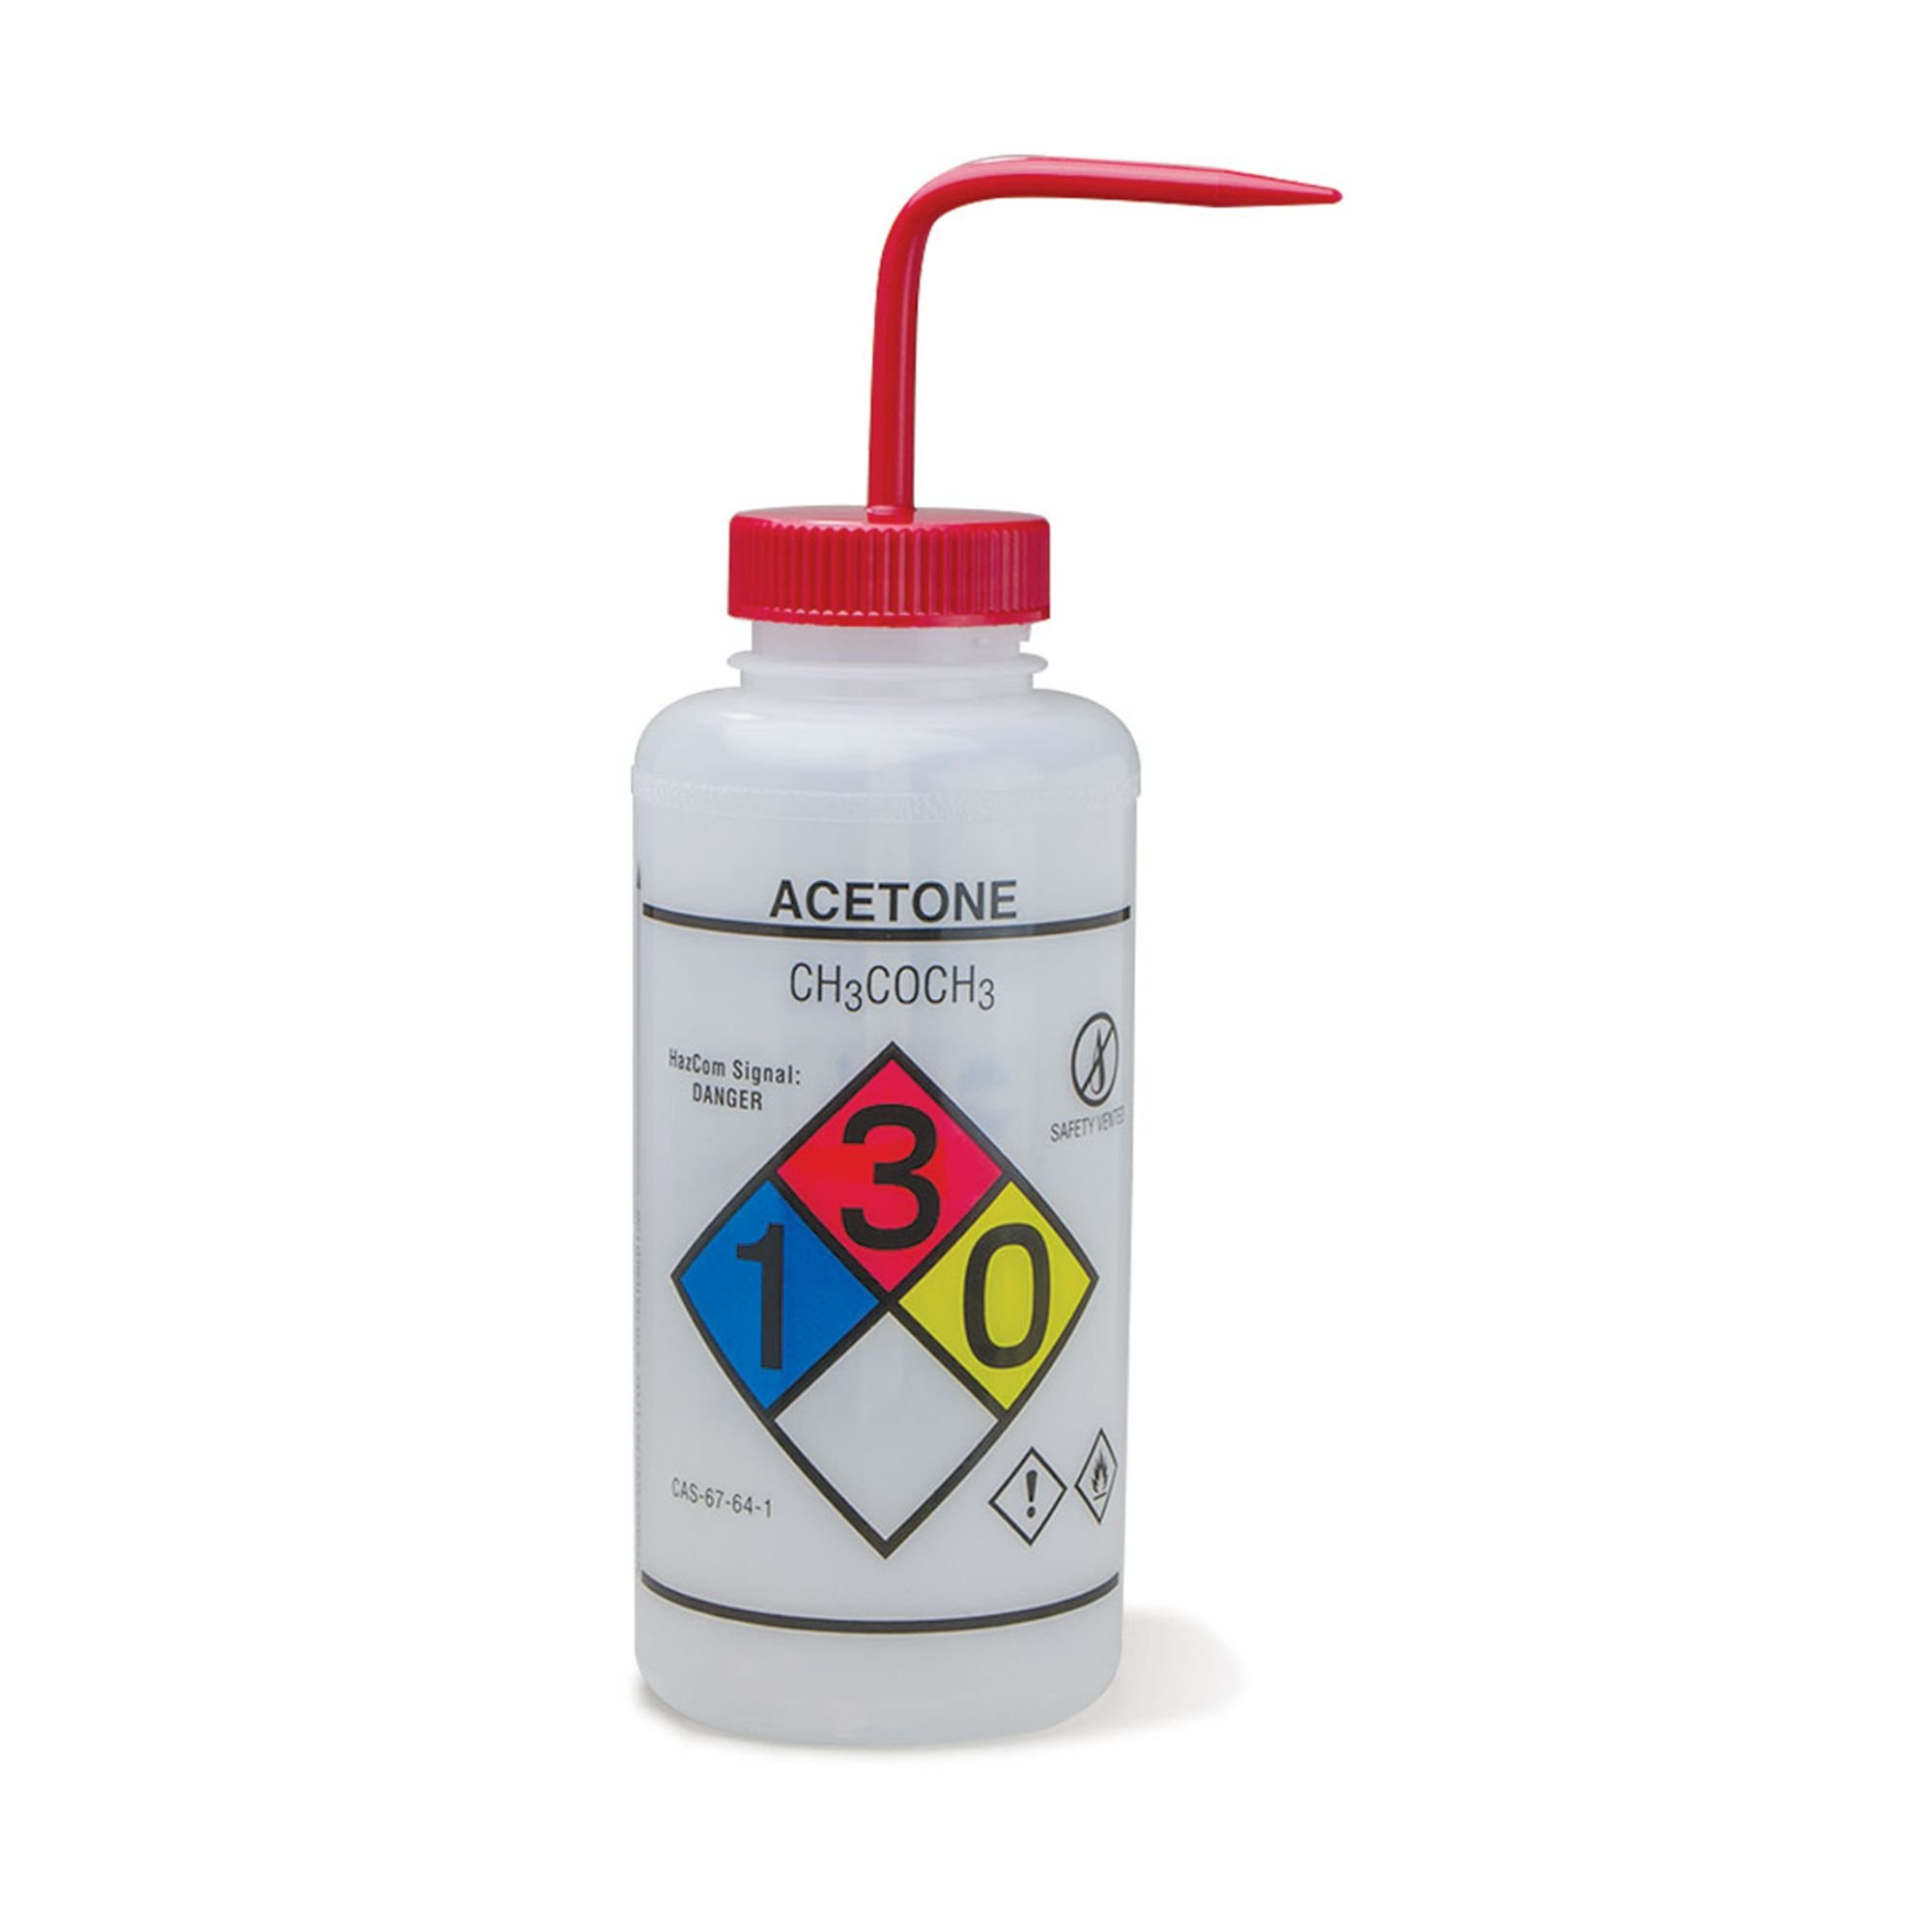 1000mL Acetone Wash Bottles Vented Right to Know GHS by CeilBlue